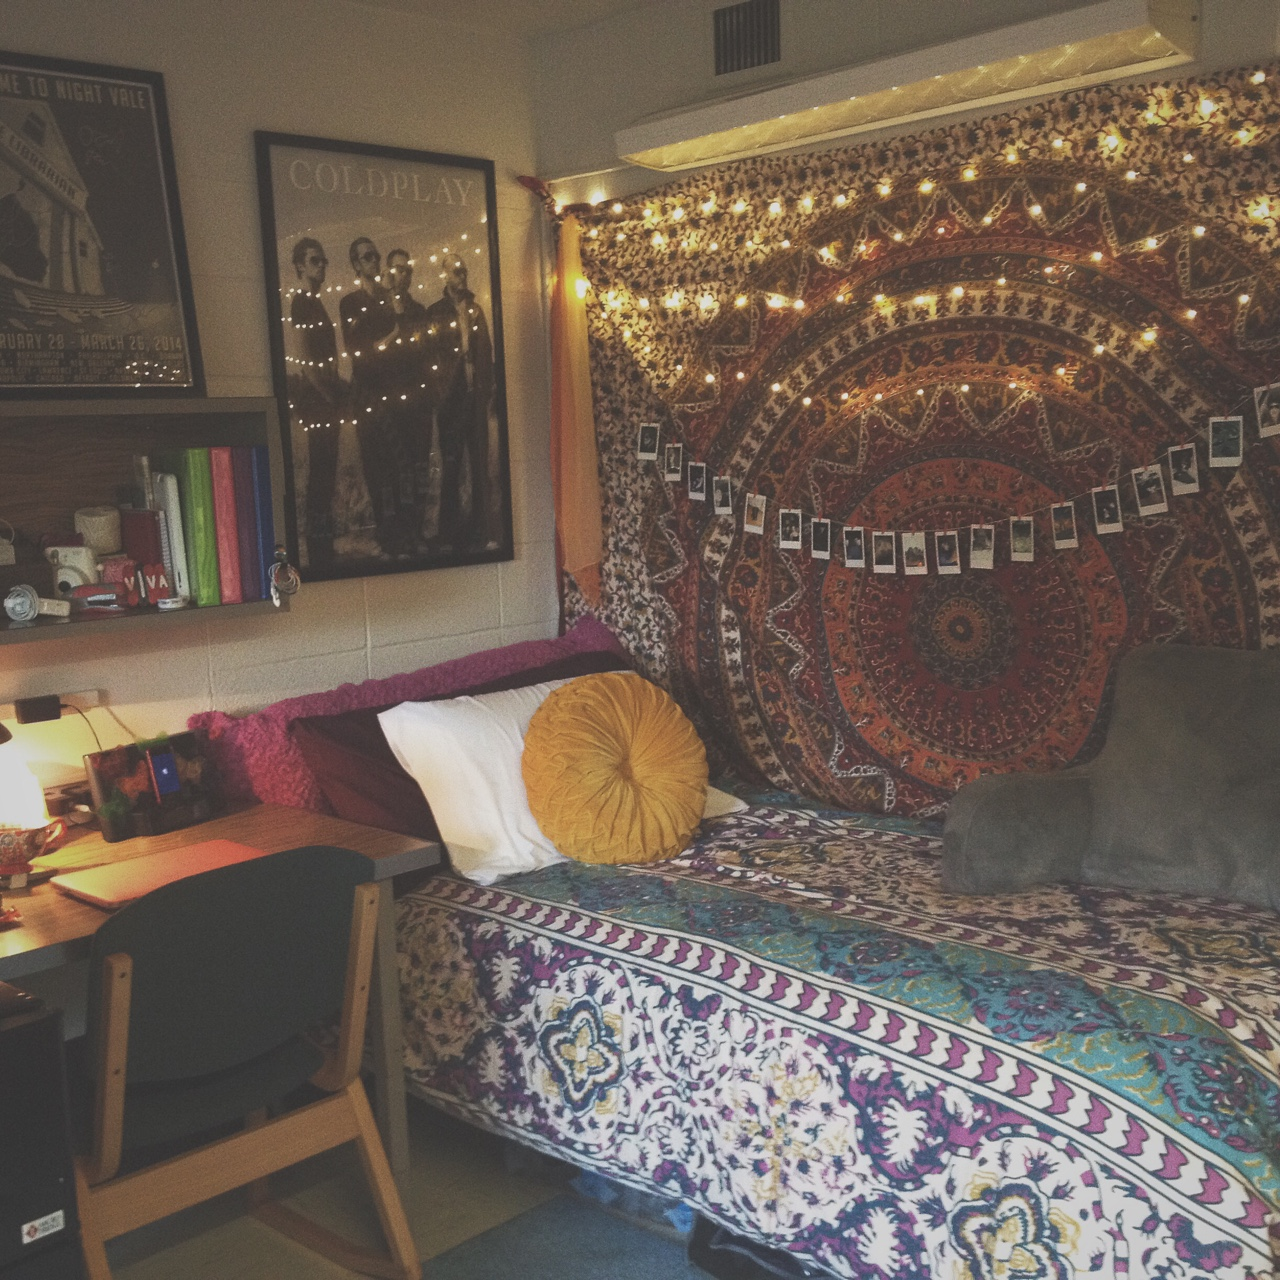 Dorm decorating ideas by style society19 - College room decor ideas ...